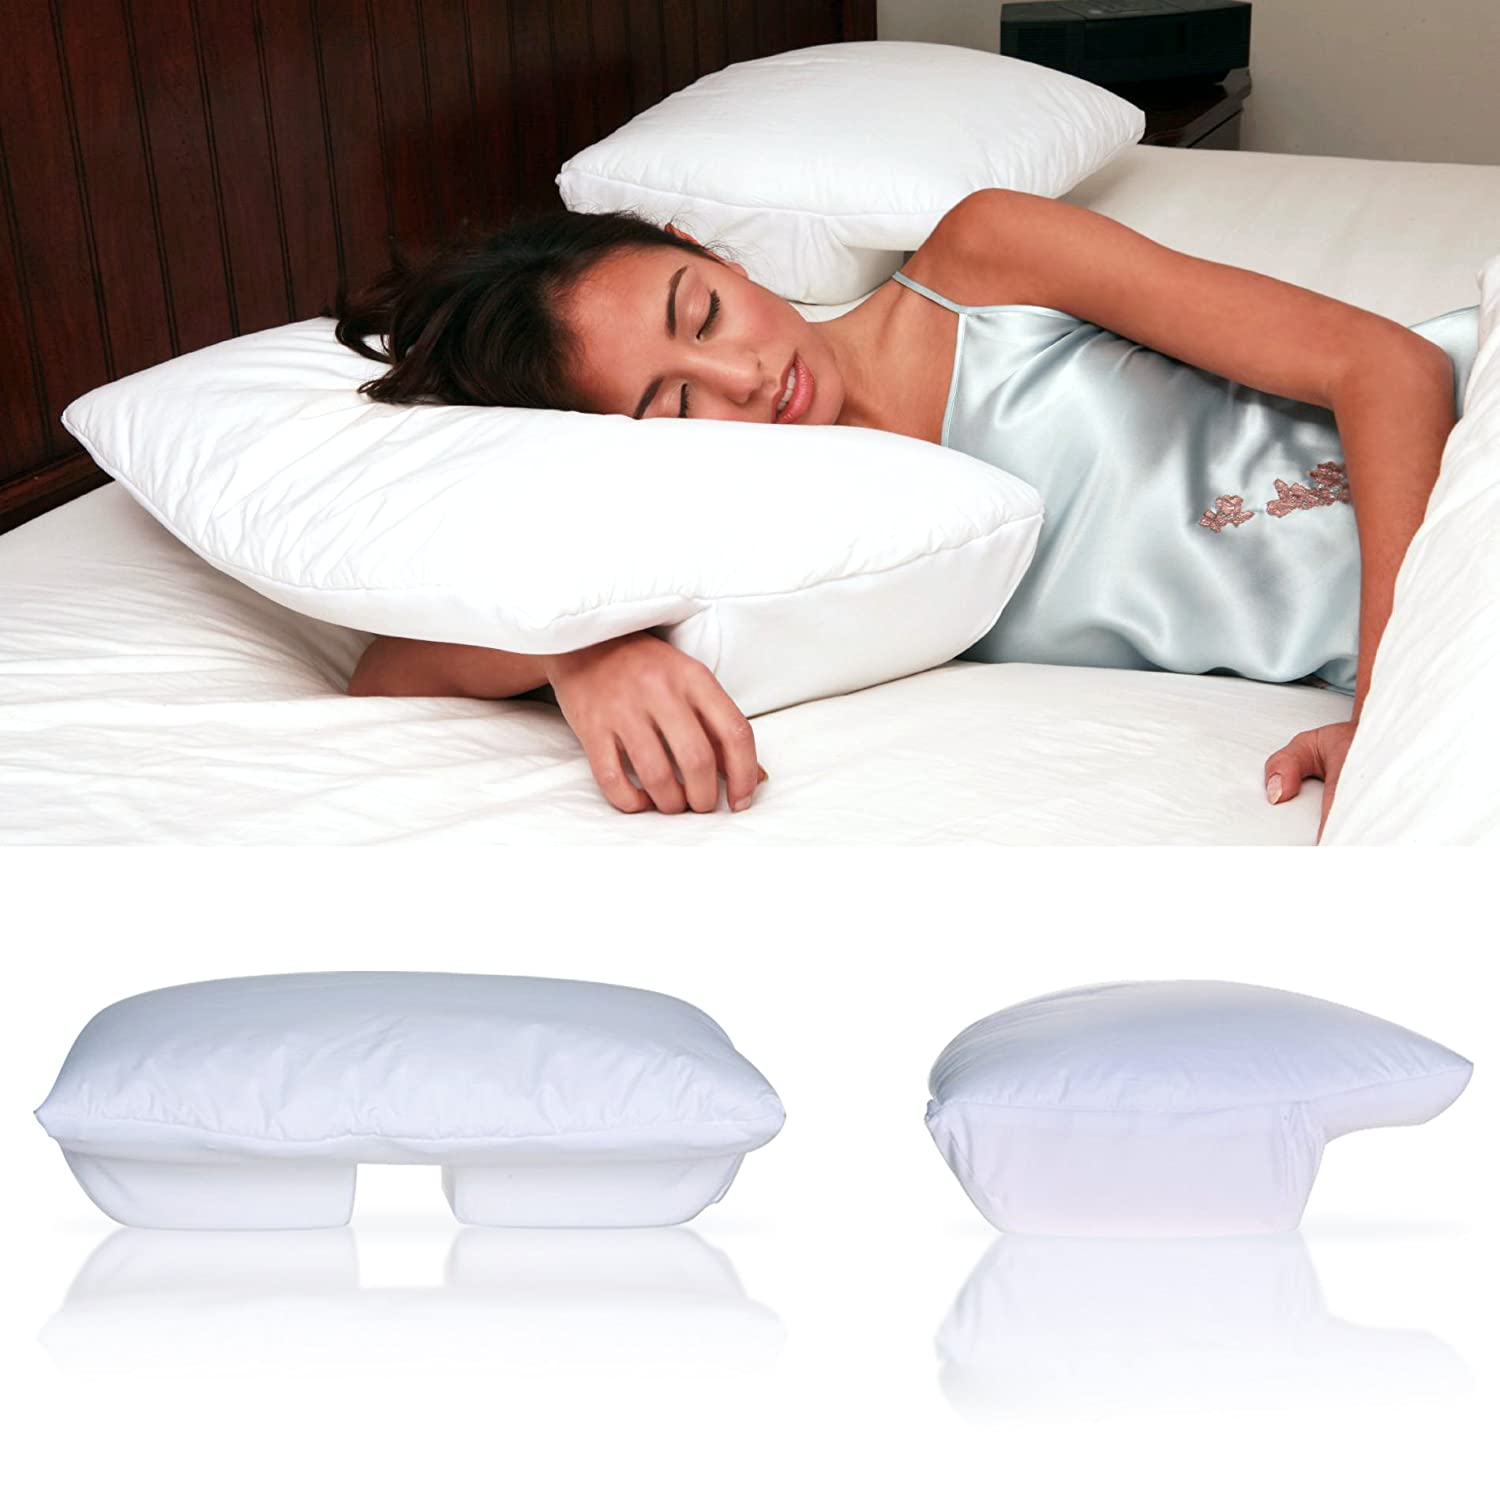 sleepers with best for system total pillow shoulder pain body the hypoallergenic side pregnancy support itm rated contoured snuggl